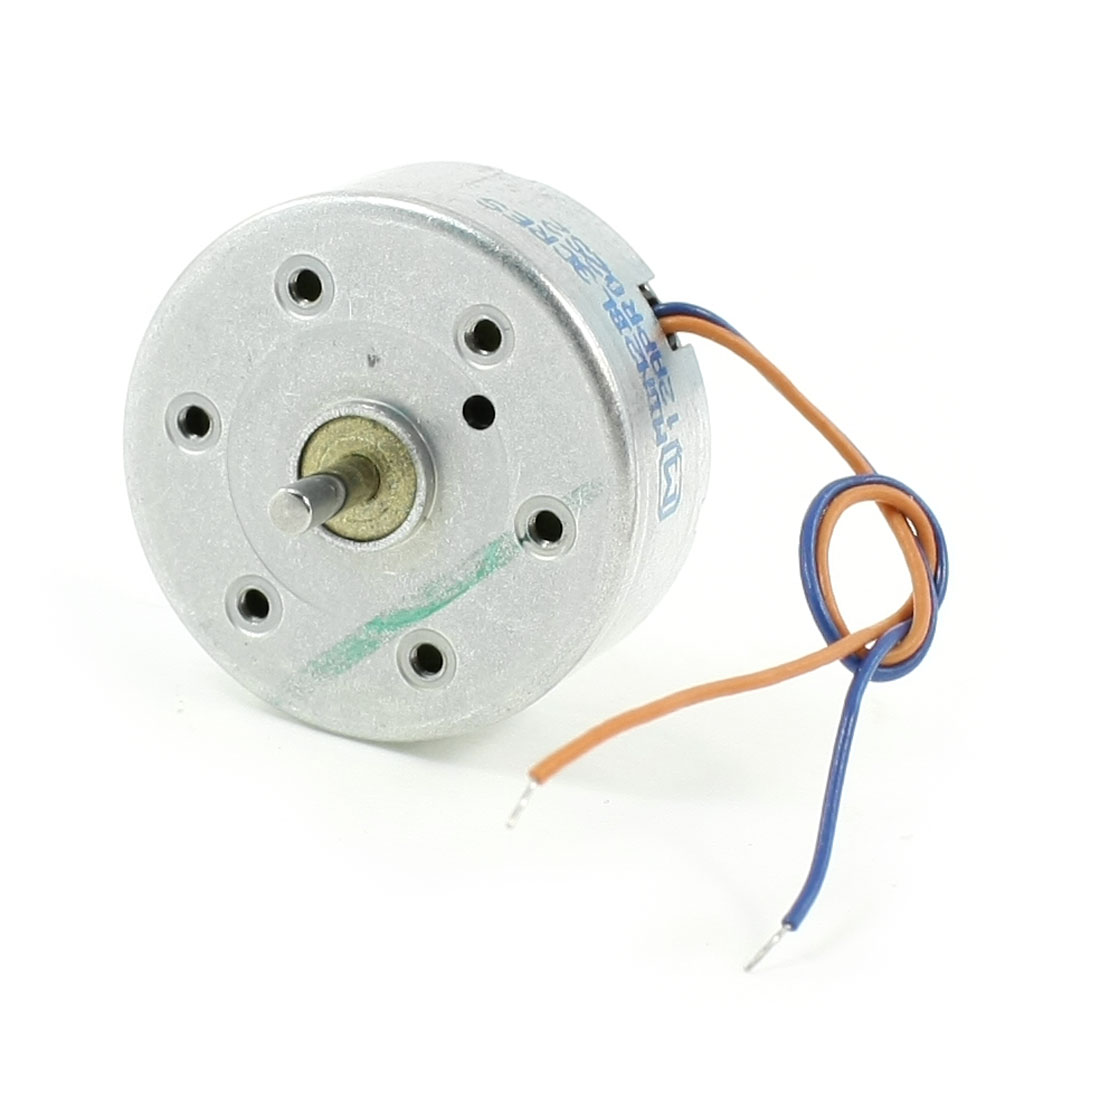 12000RPM 6V 0.03A High Torque Cylinder Electric Mini DC Motor